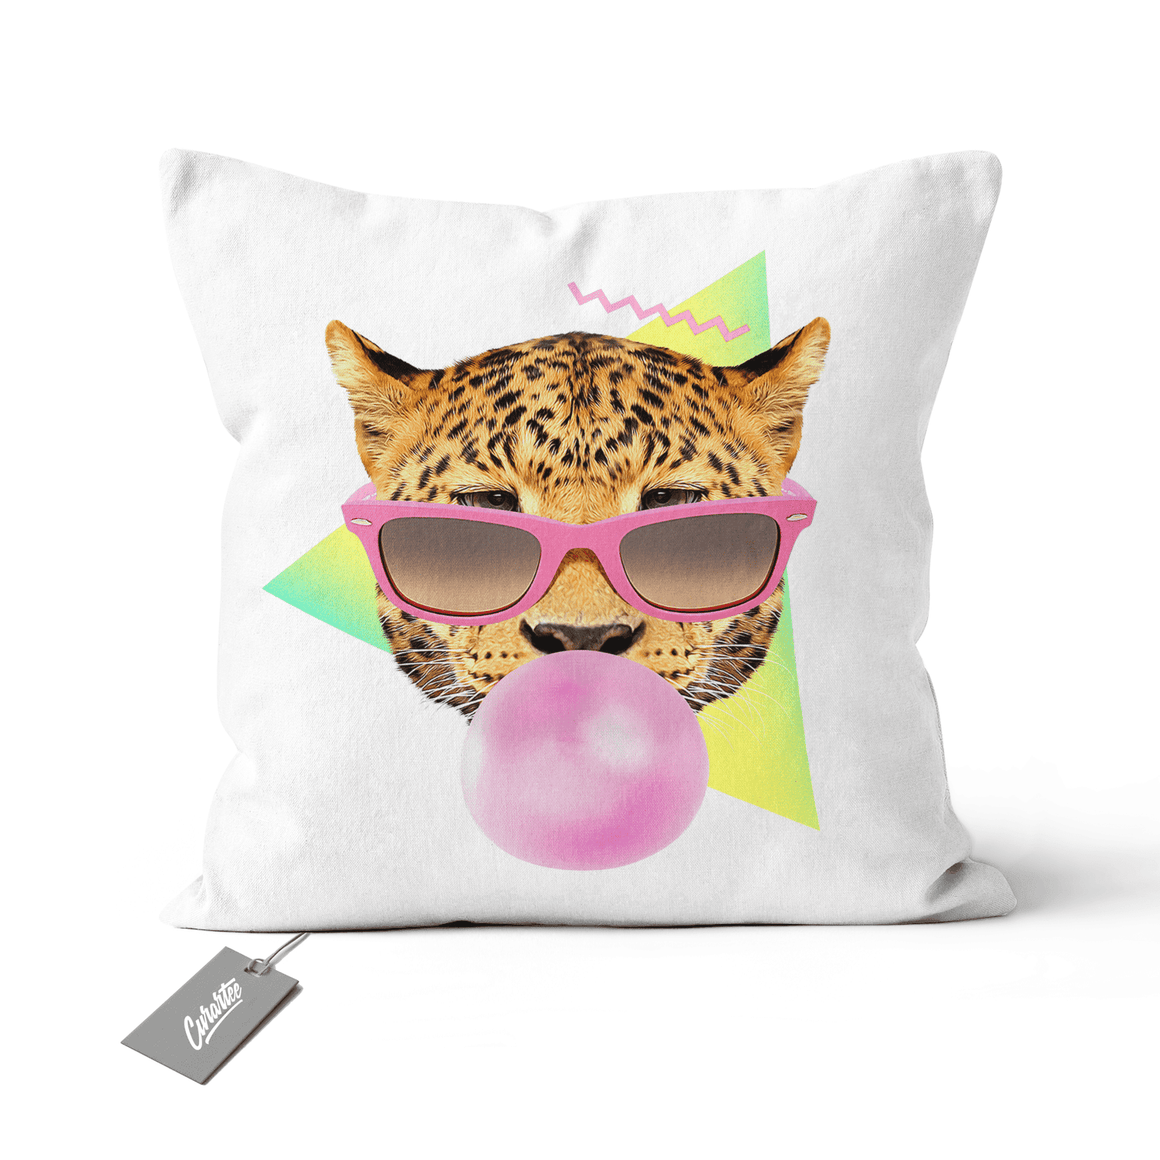 Bubble Gum Leo Cushion - Premium Artwear Curartee